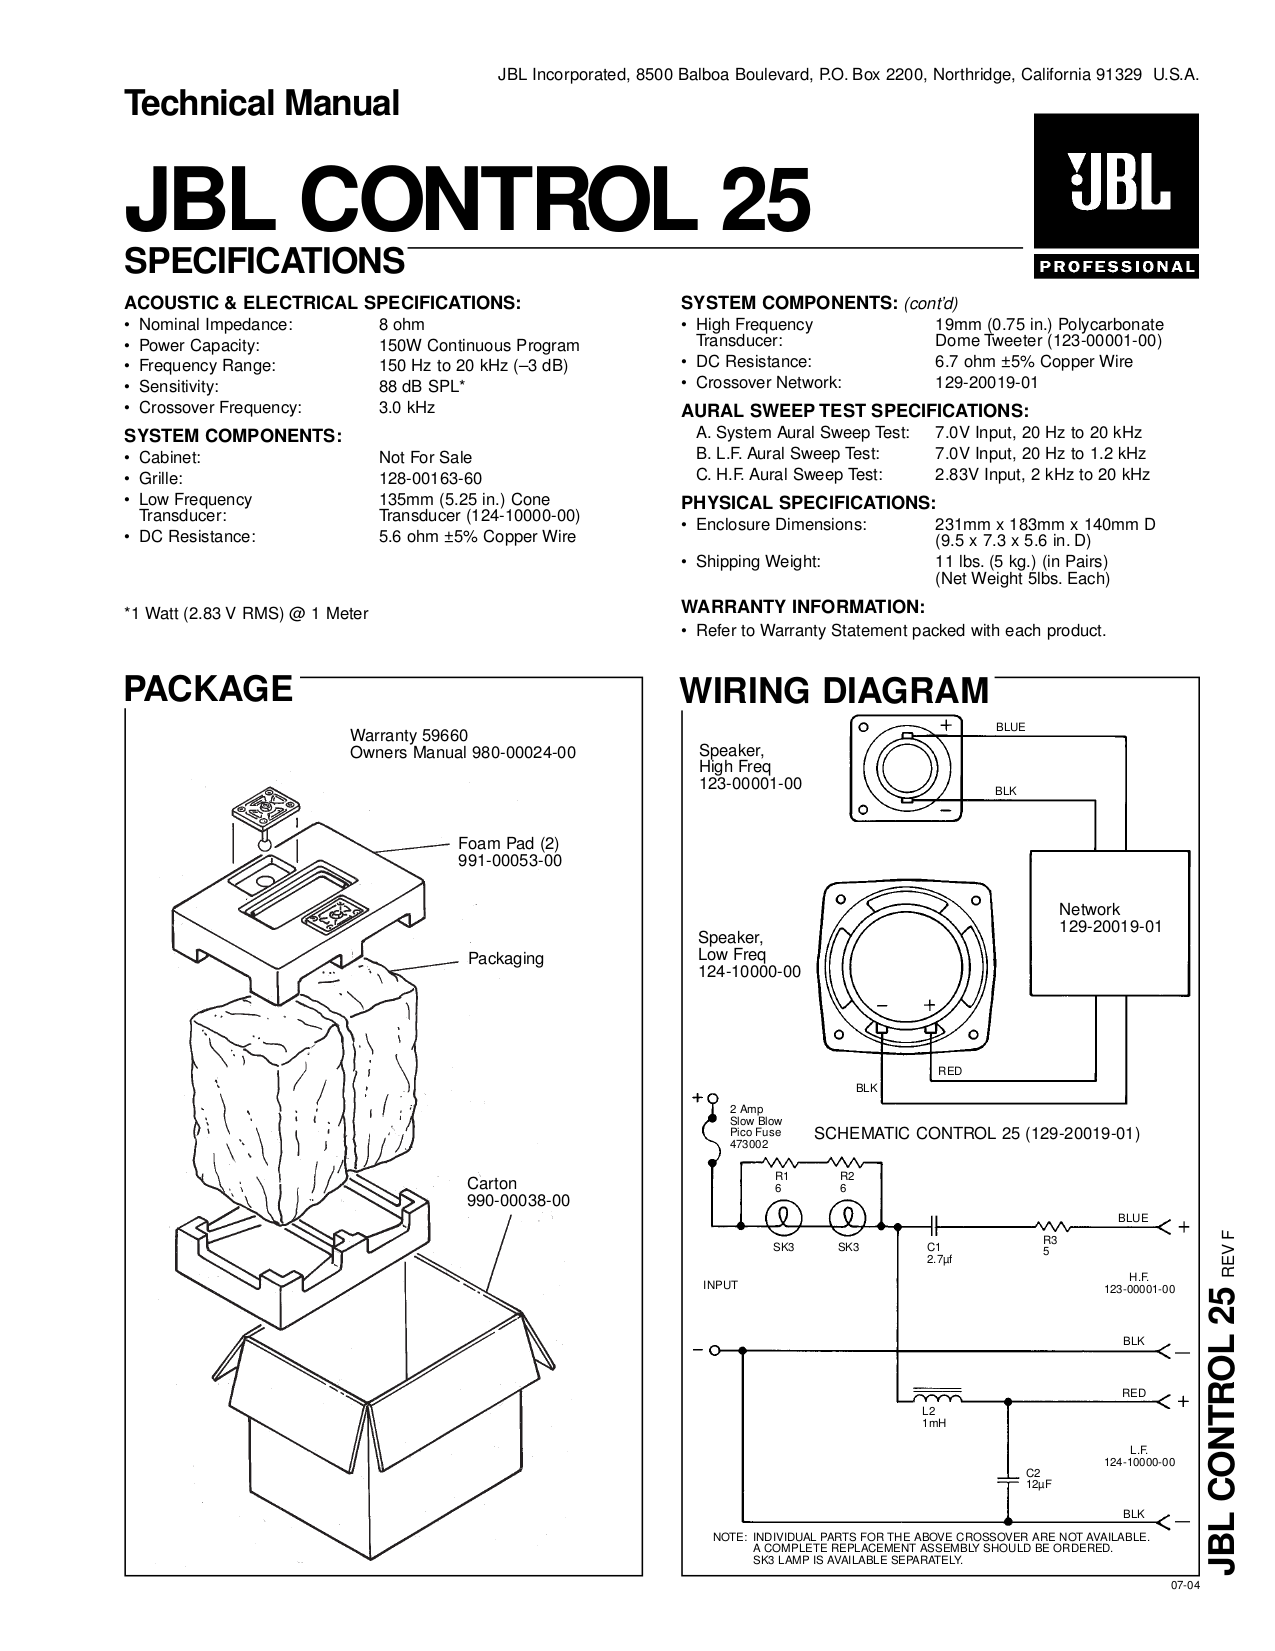 Jbl Control 25 Wiring Diagram Simple Diagrams Blue White Red Black Phone Free Download Post In Wall Pdf For